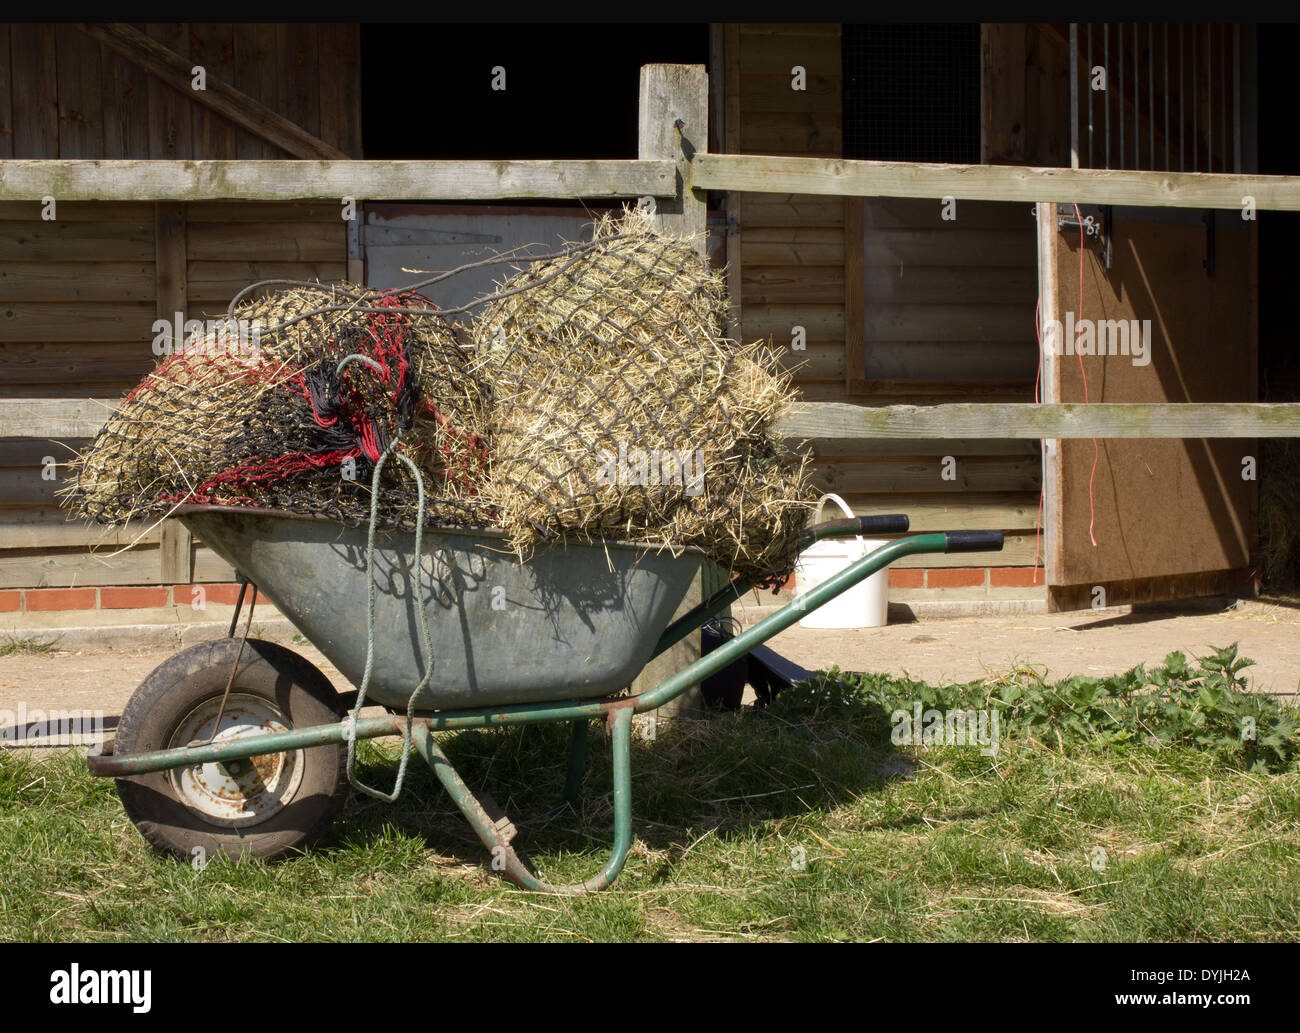 Wheelbarrow of three bags of netted hay / straw for horse feed against a background of stables, - Stock Image